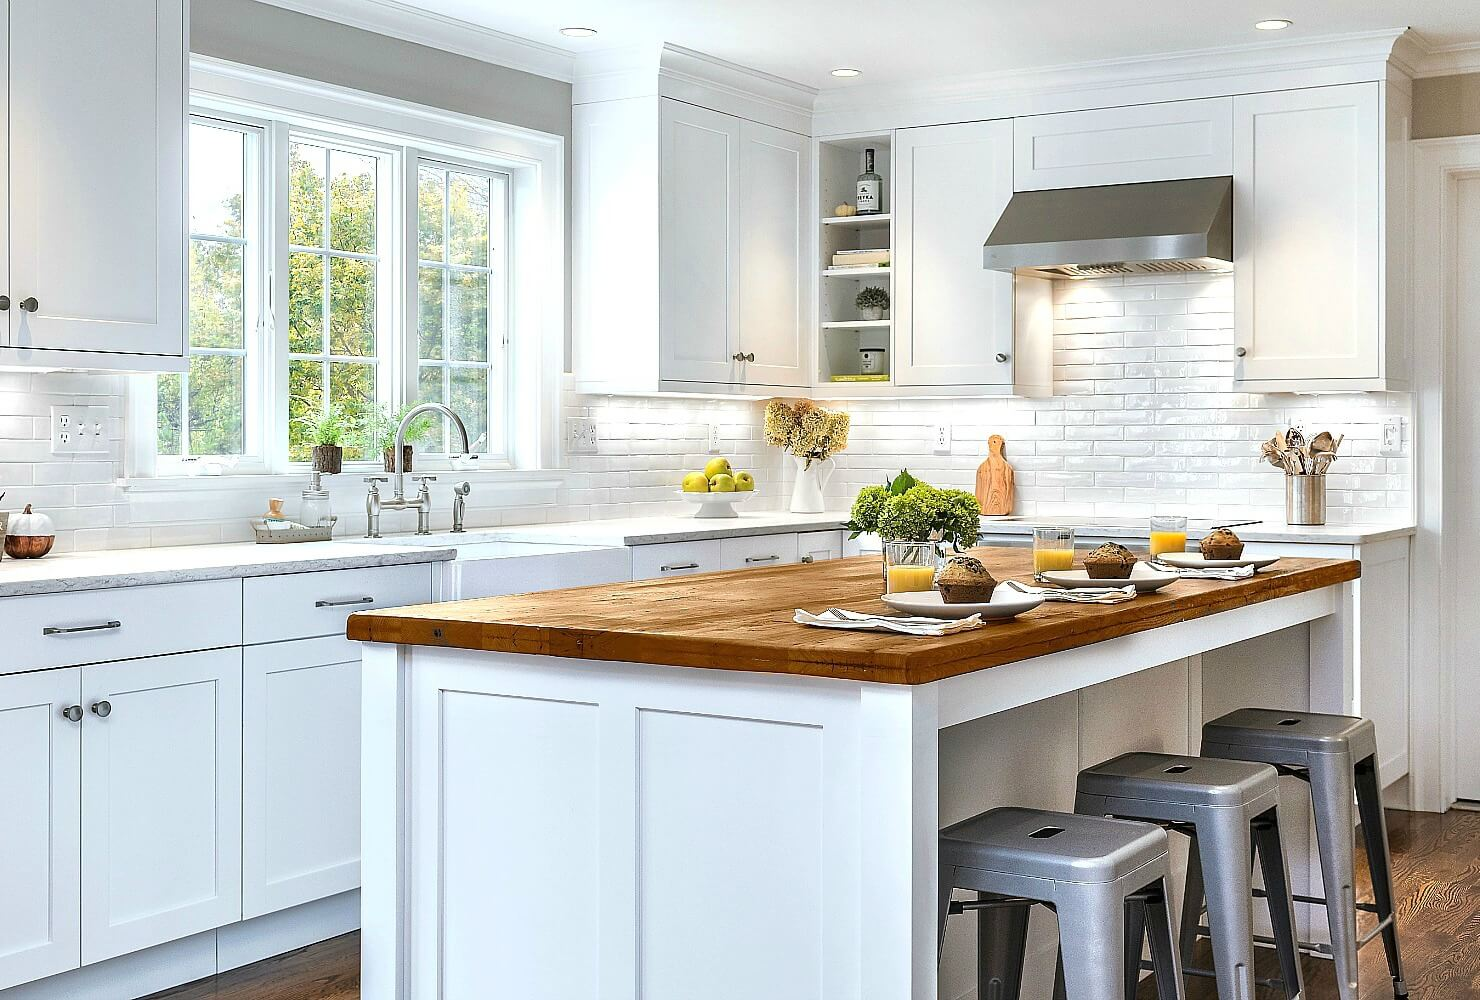 White Cabinets Are The Most Popular Cabinet Option Today, And Itu0027s No  Surprise Why. White Adds A Sense Of Airiness To Both Large And Small  Kitchens, ...